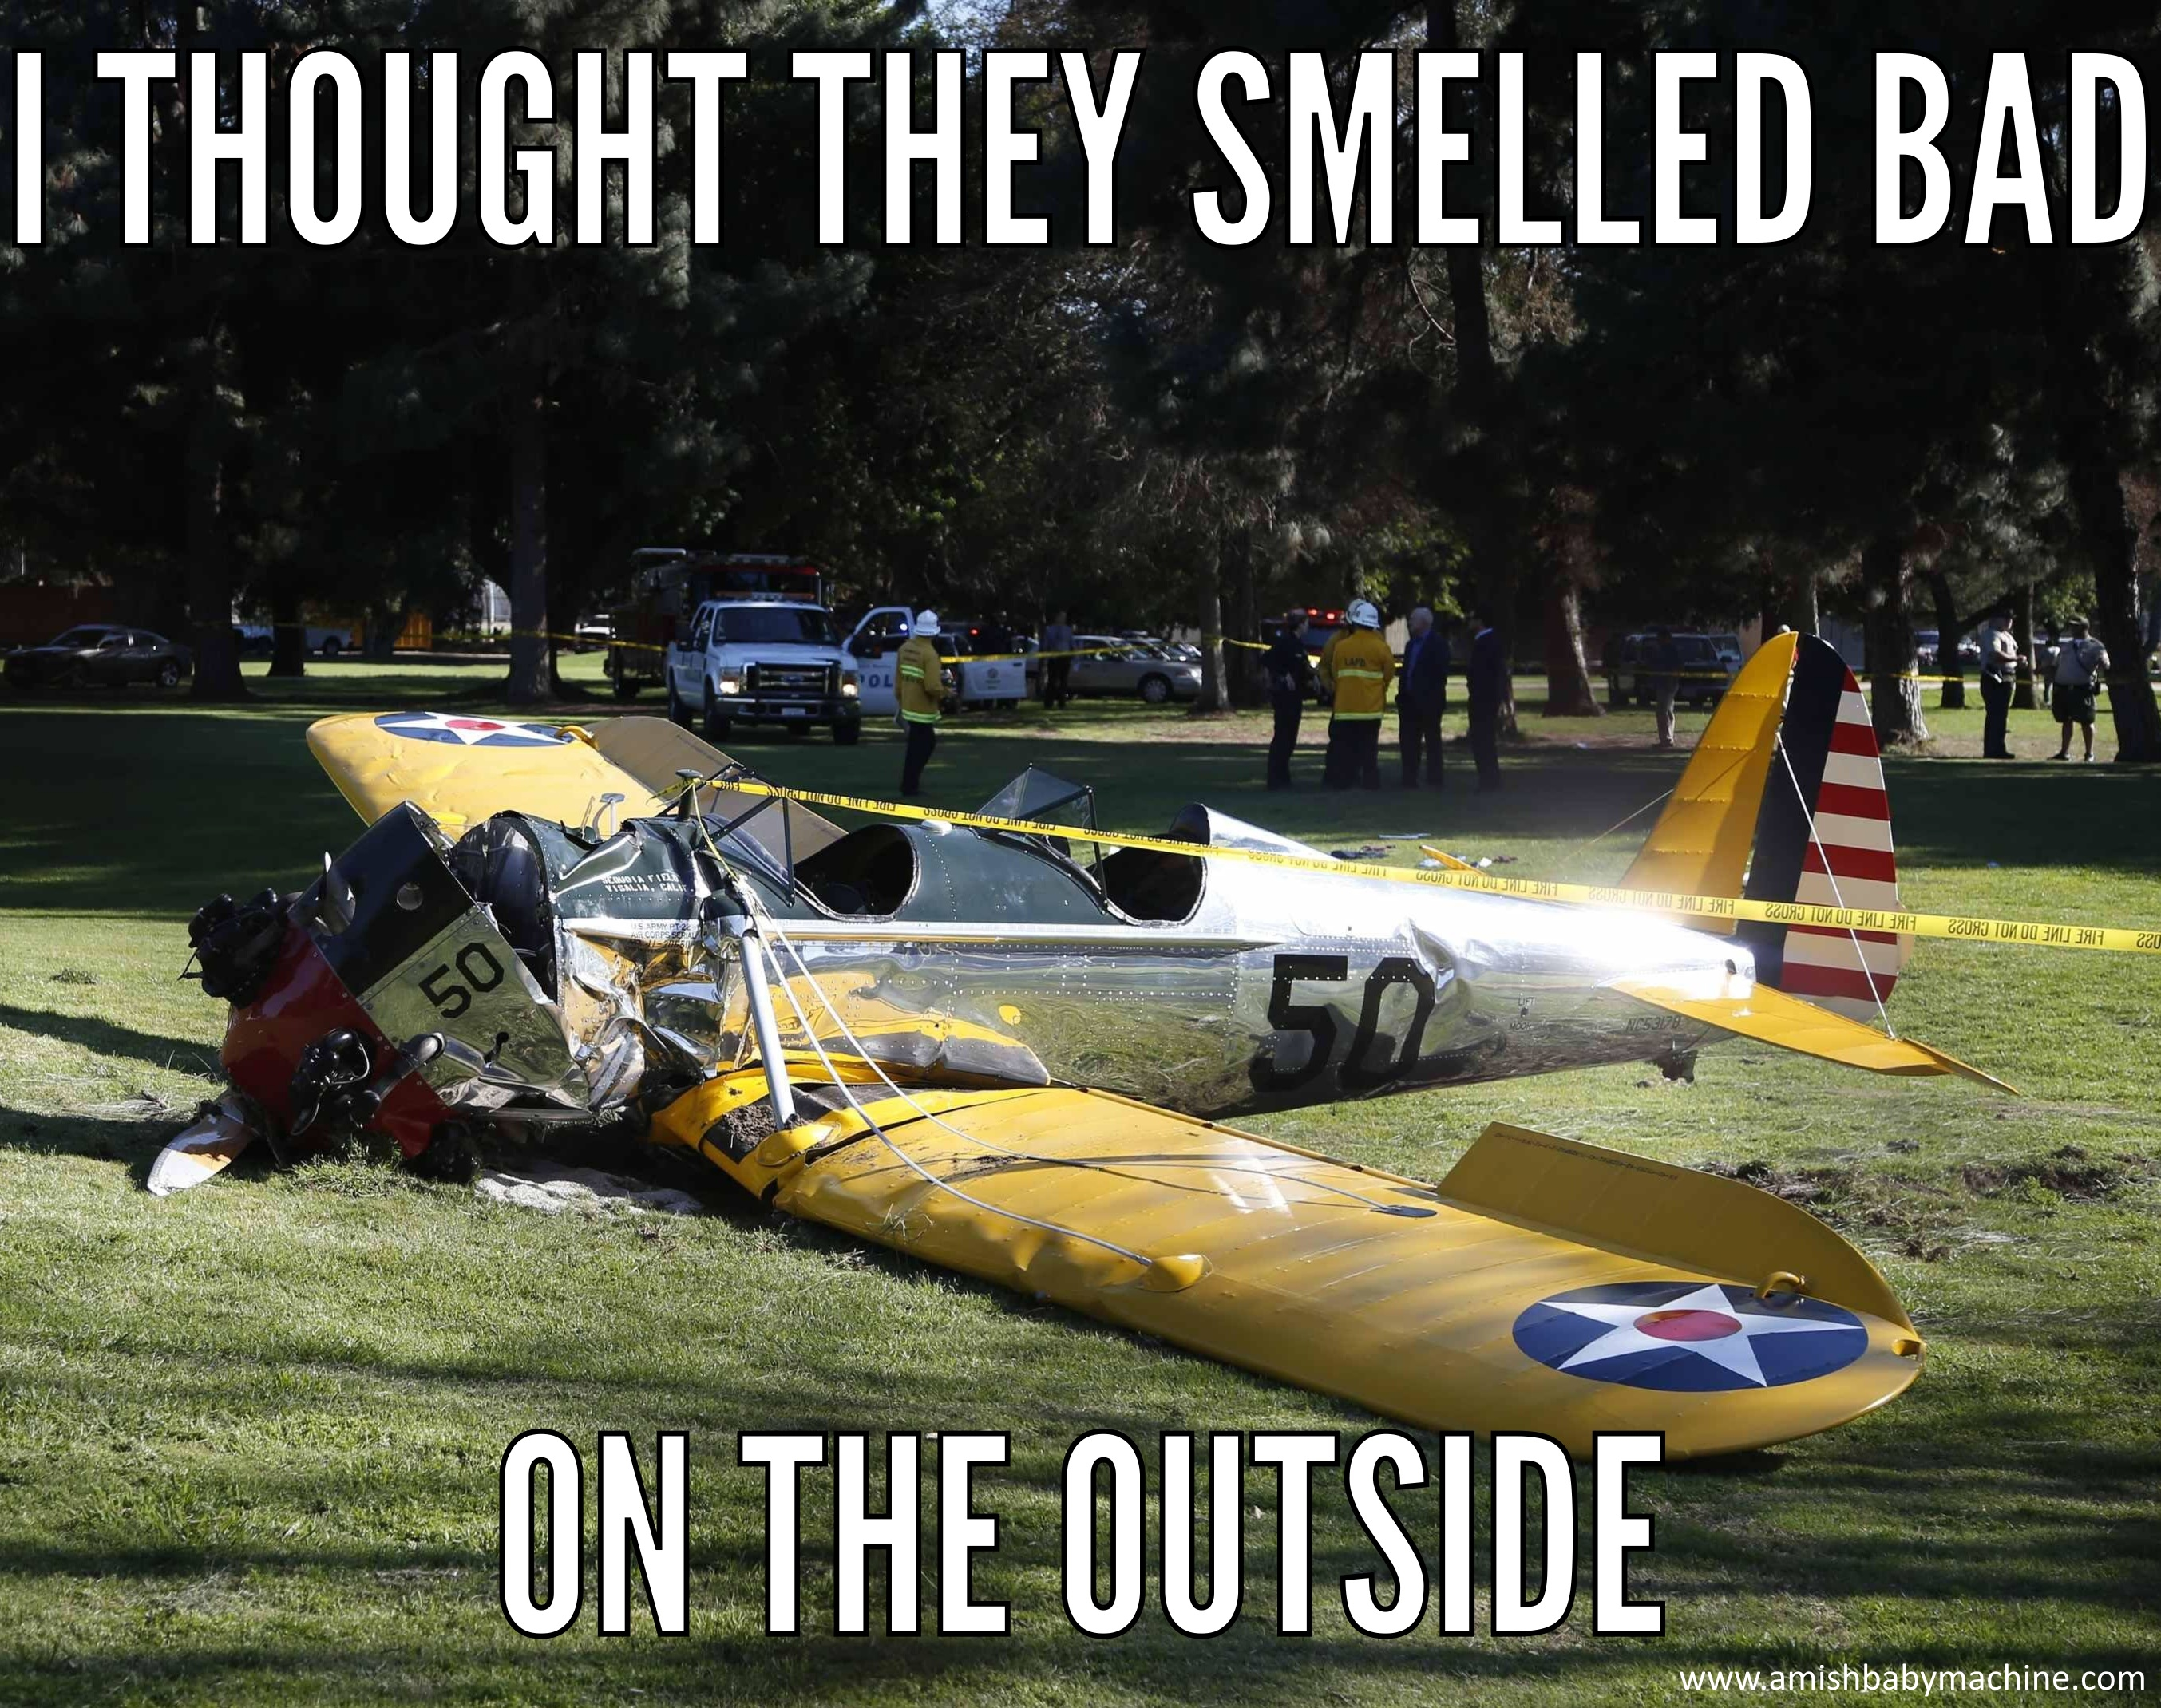 harrison ford plane crash funny meme amish baby machine podcast,Funny Meme Manufacturing Airplanes